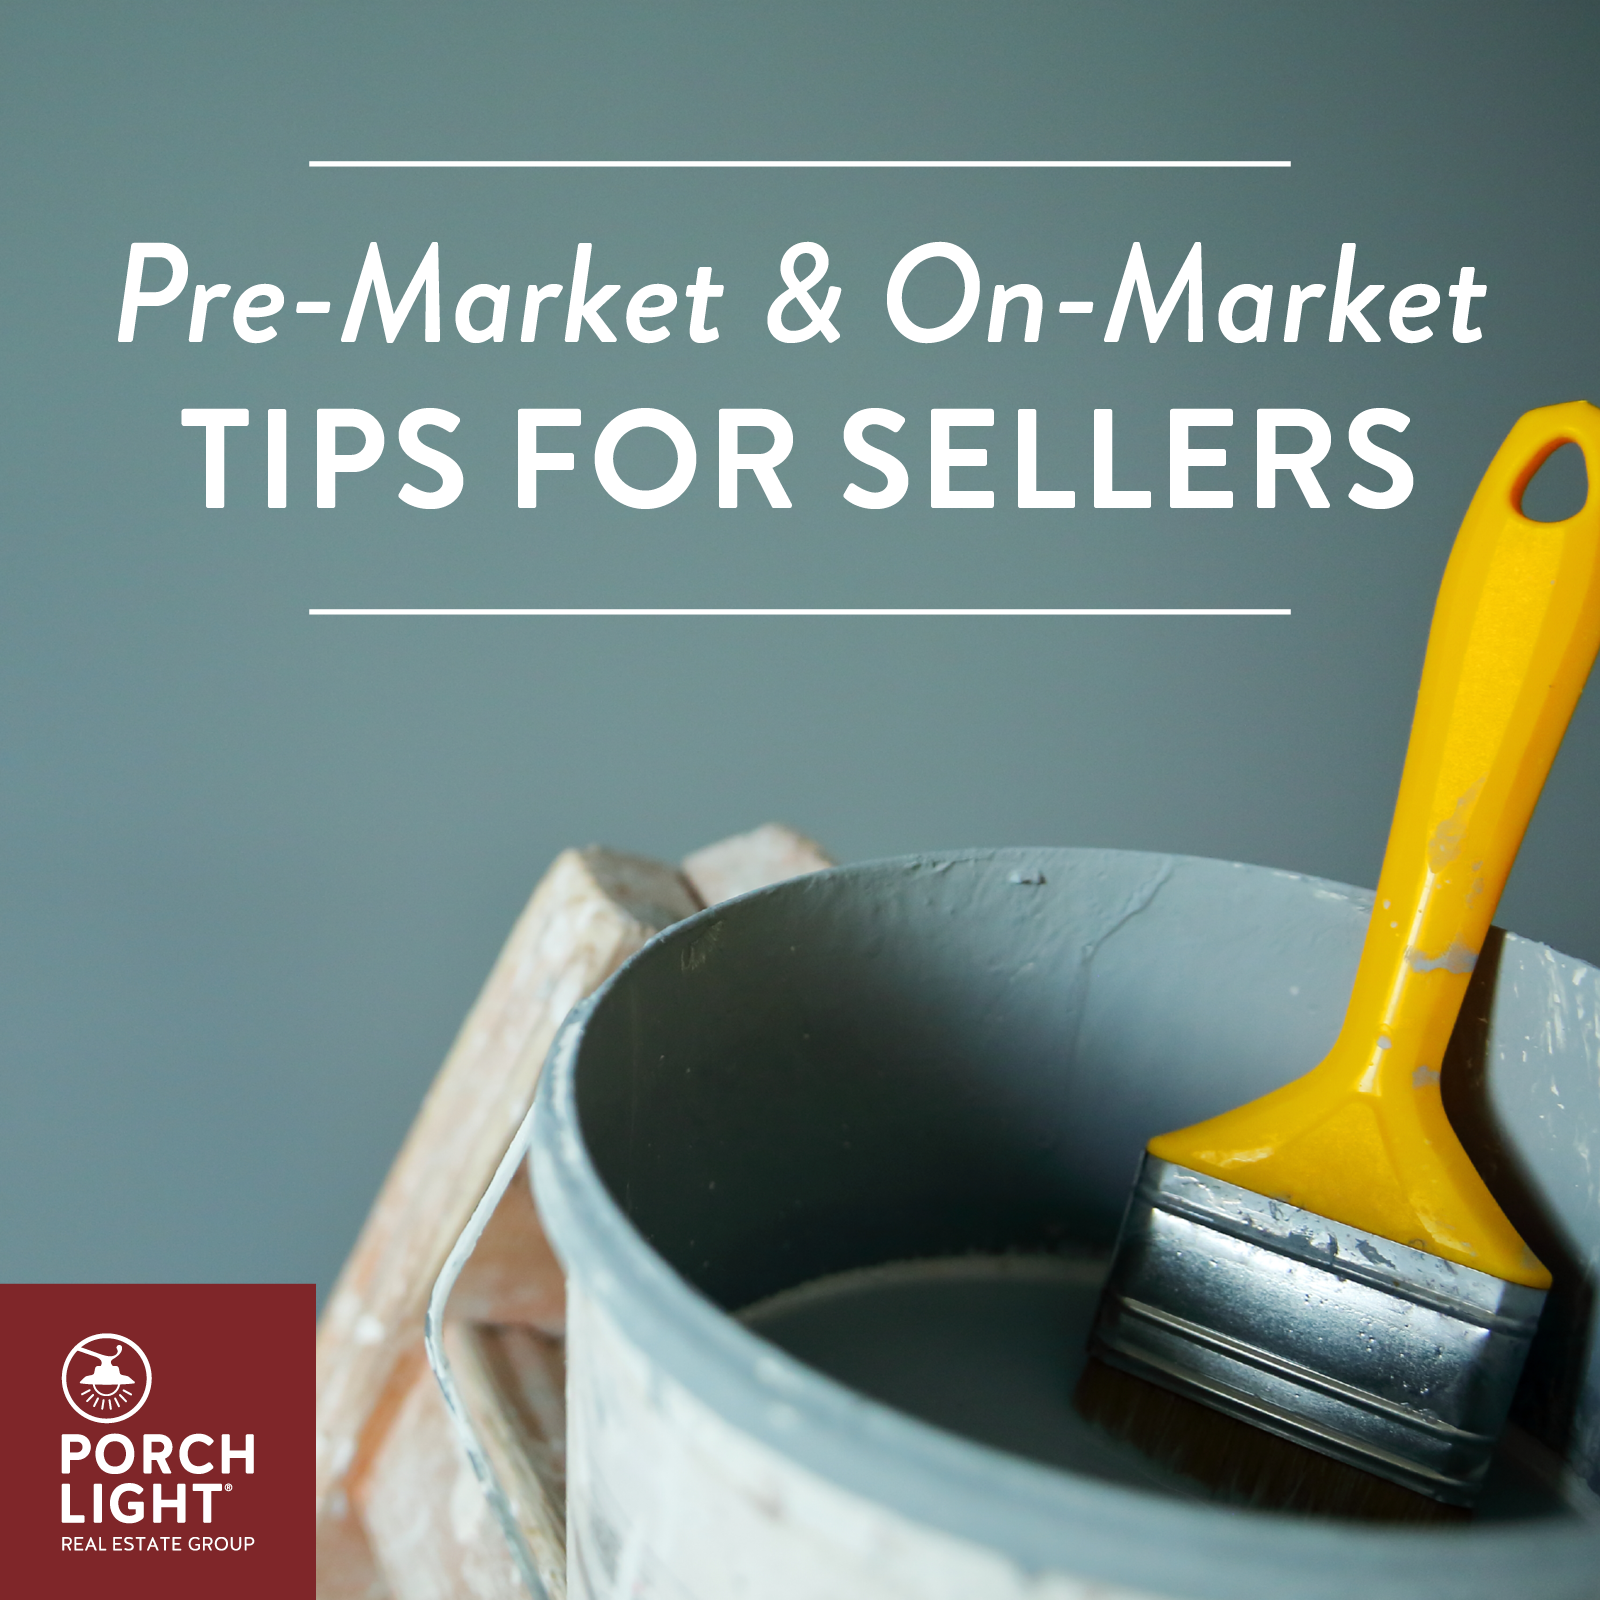 Tips for Sellers, Pre and On-Market